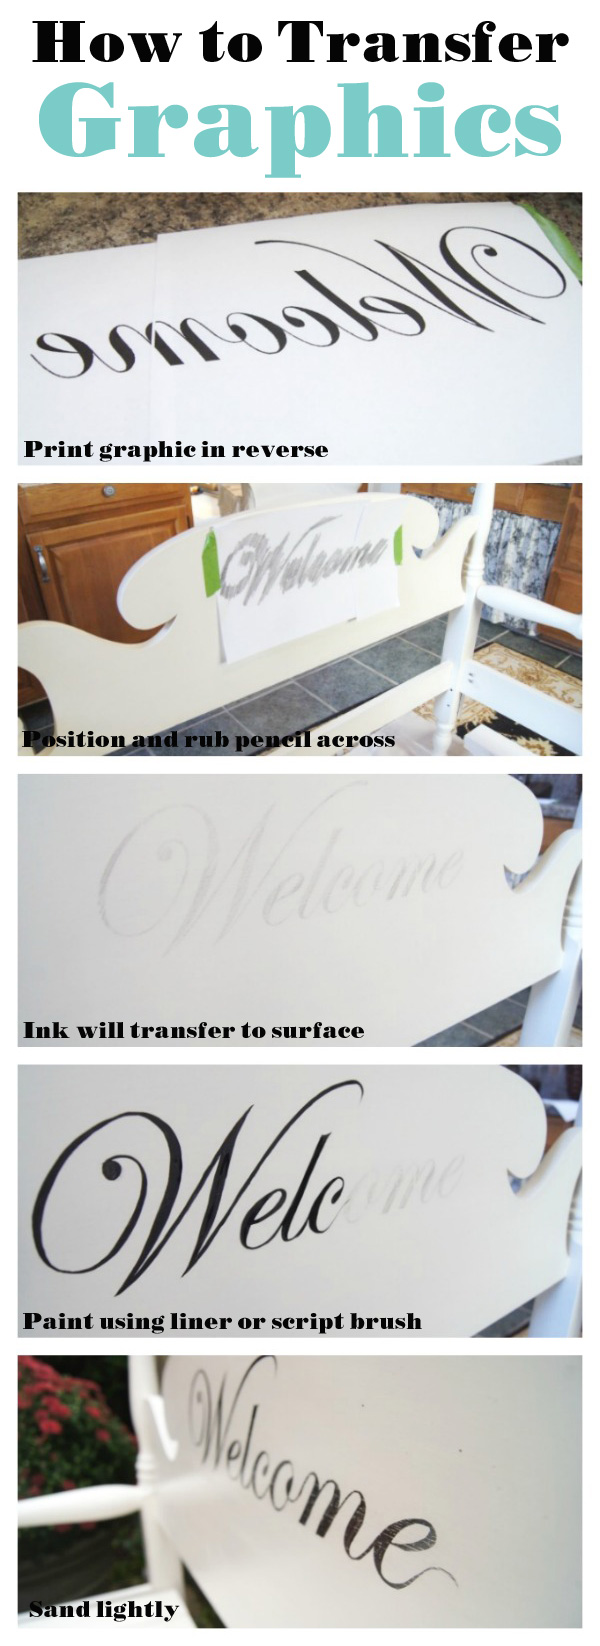 Easy way to transfer letters or graphics to a project